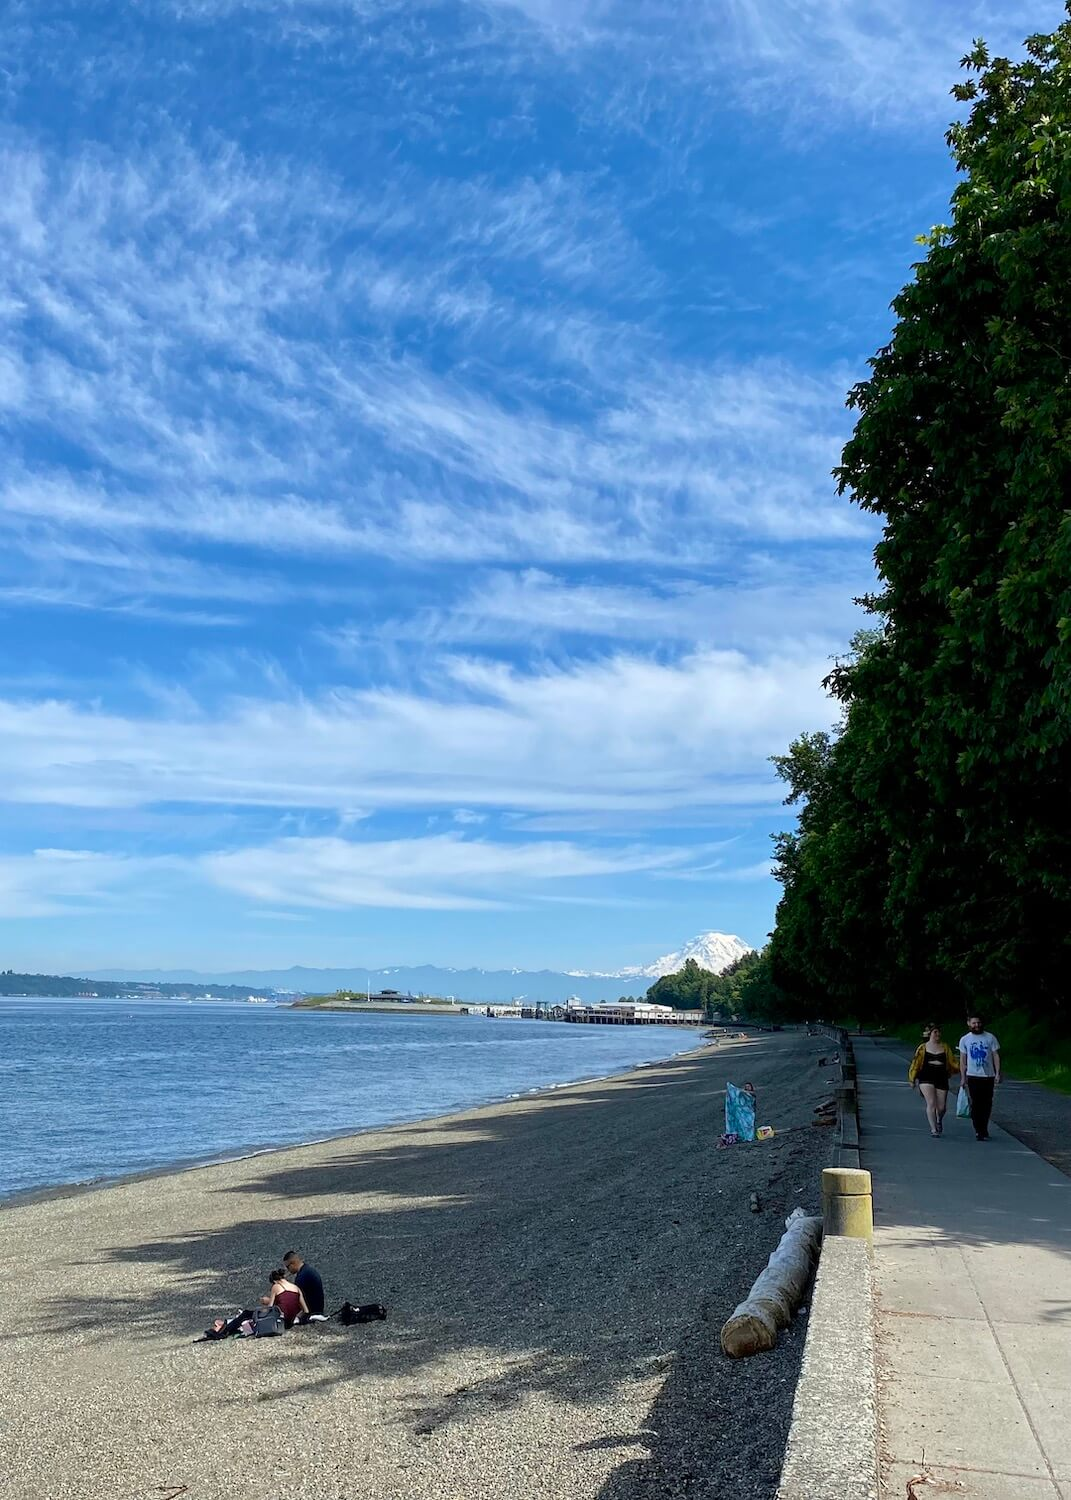 The Promenade at Point Defiance Park is a lovely place to walk along the Salish Sea.  On a nice day like the day this photo was taken Mt. Rainier can be seen in the background.  The tide is low revealing a pebbly rocky beach as two people stroll along the walkway.